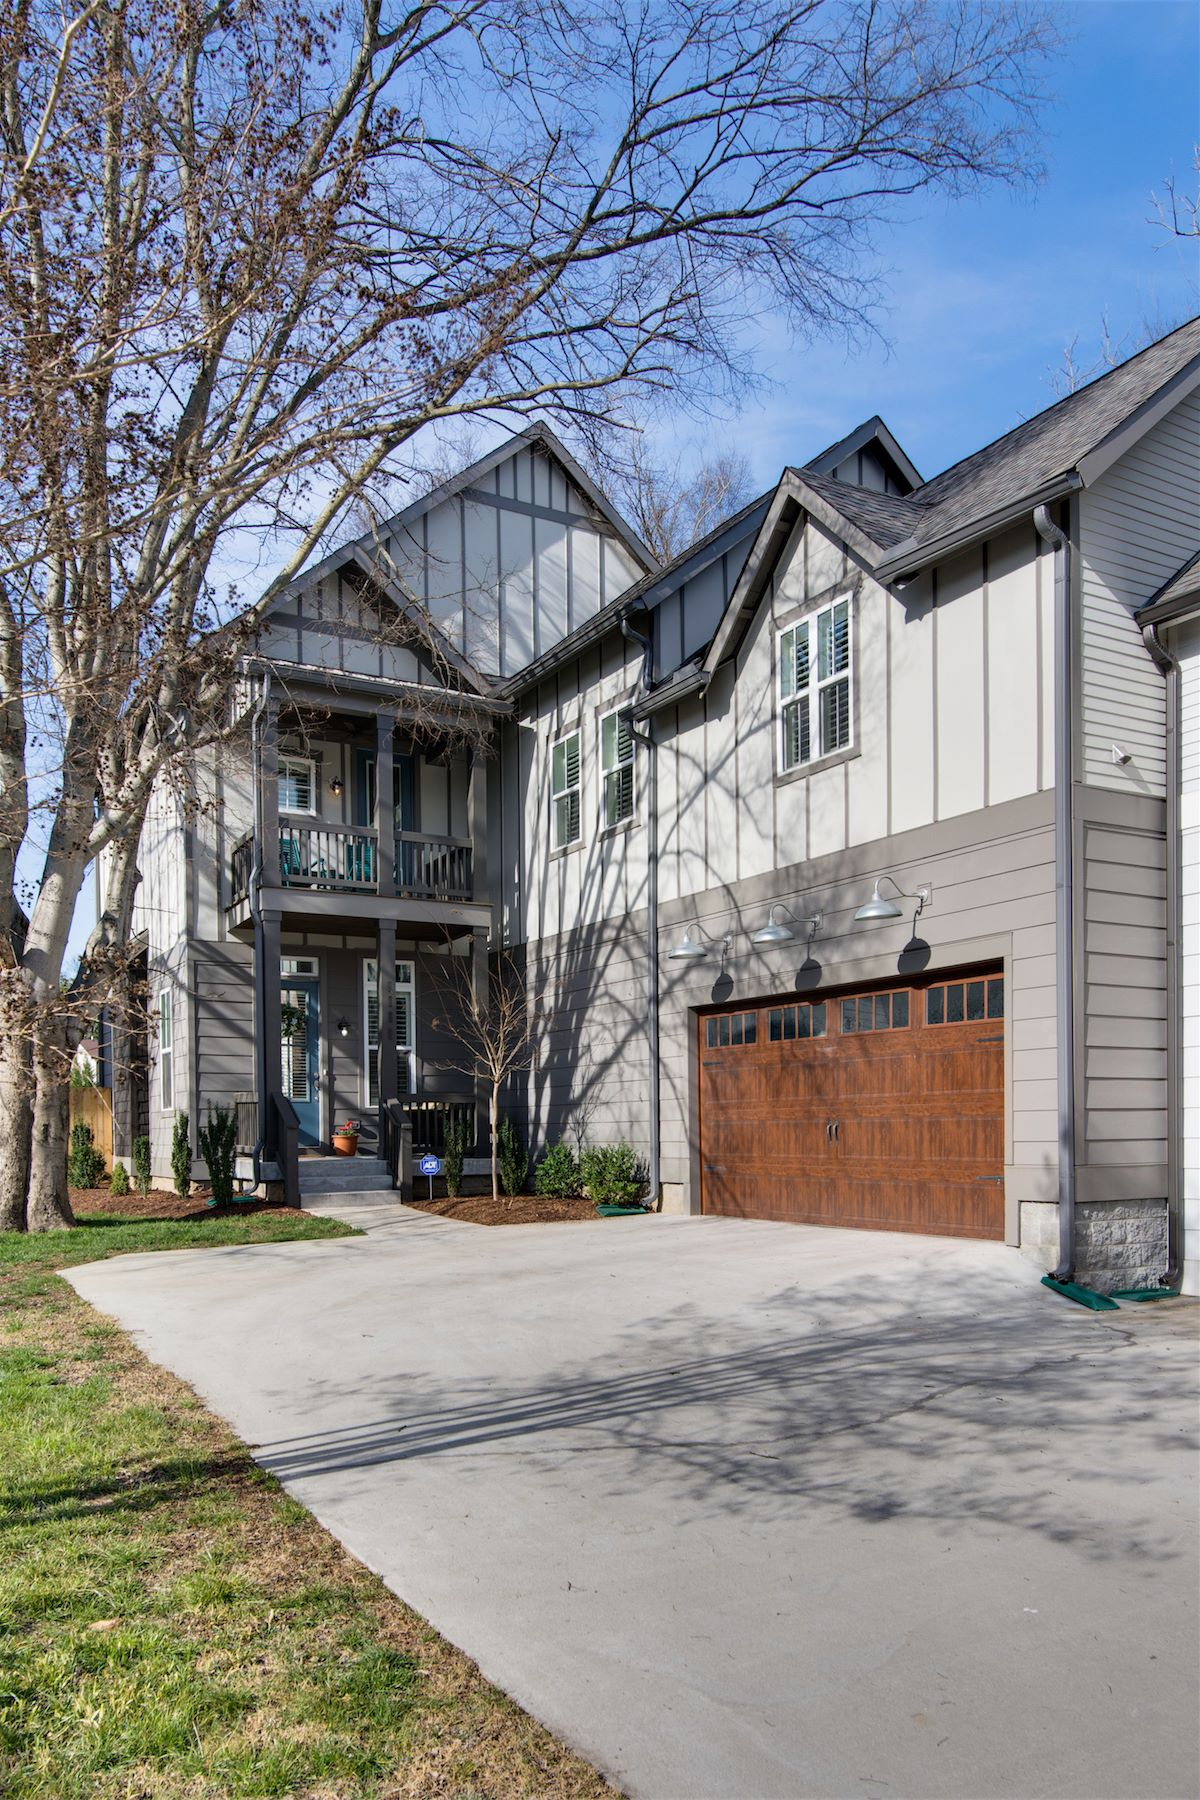 Single Family Home for Sale at Picture Perfect 12 South Home 908B Gale Ln Nashville, Tennessee 37204 United States